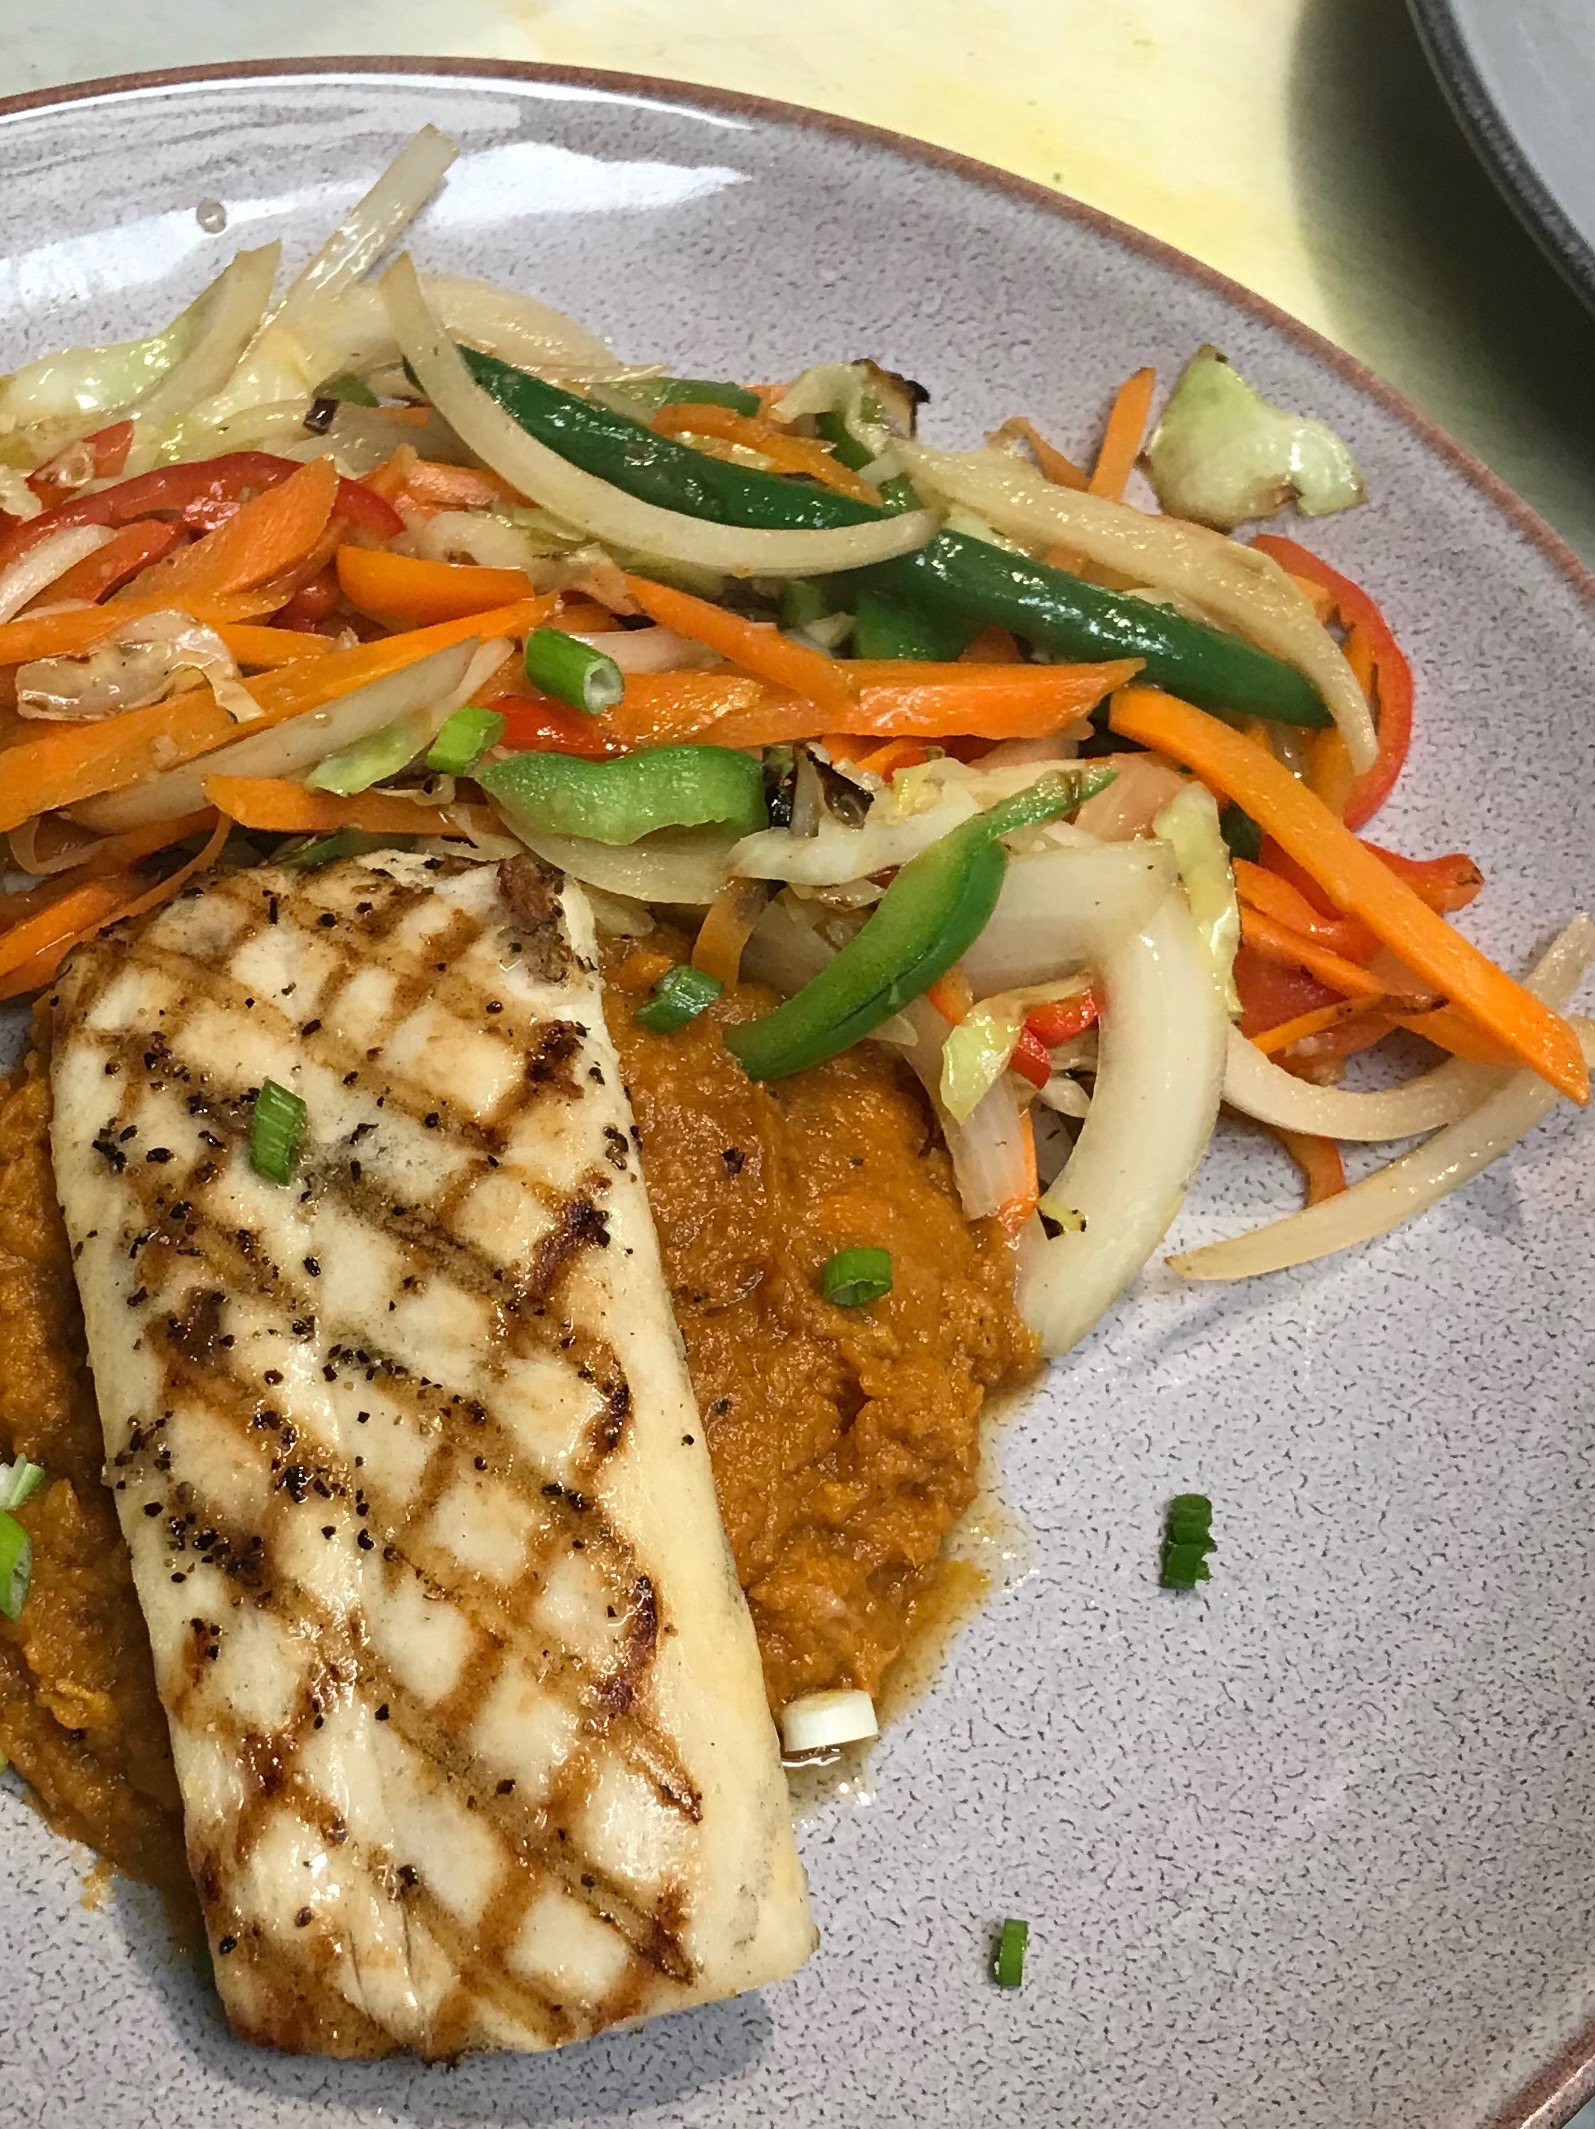 Mahi with sweet potato mash and stir fried vegetables